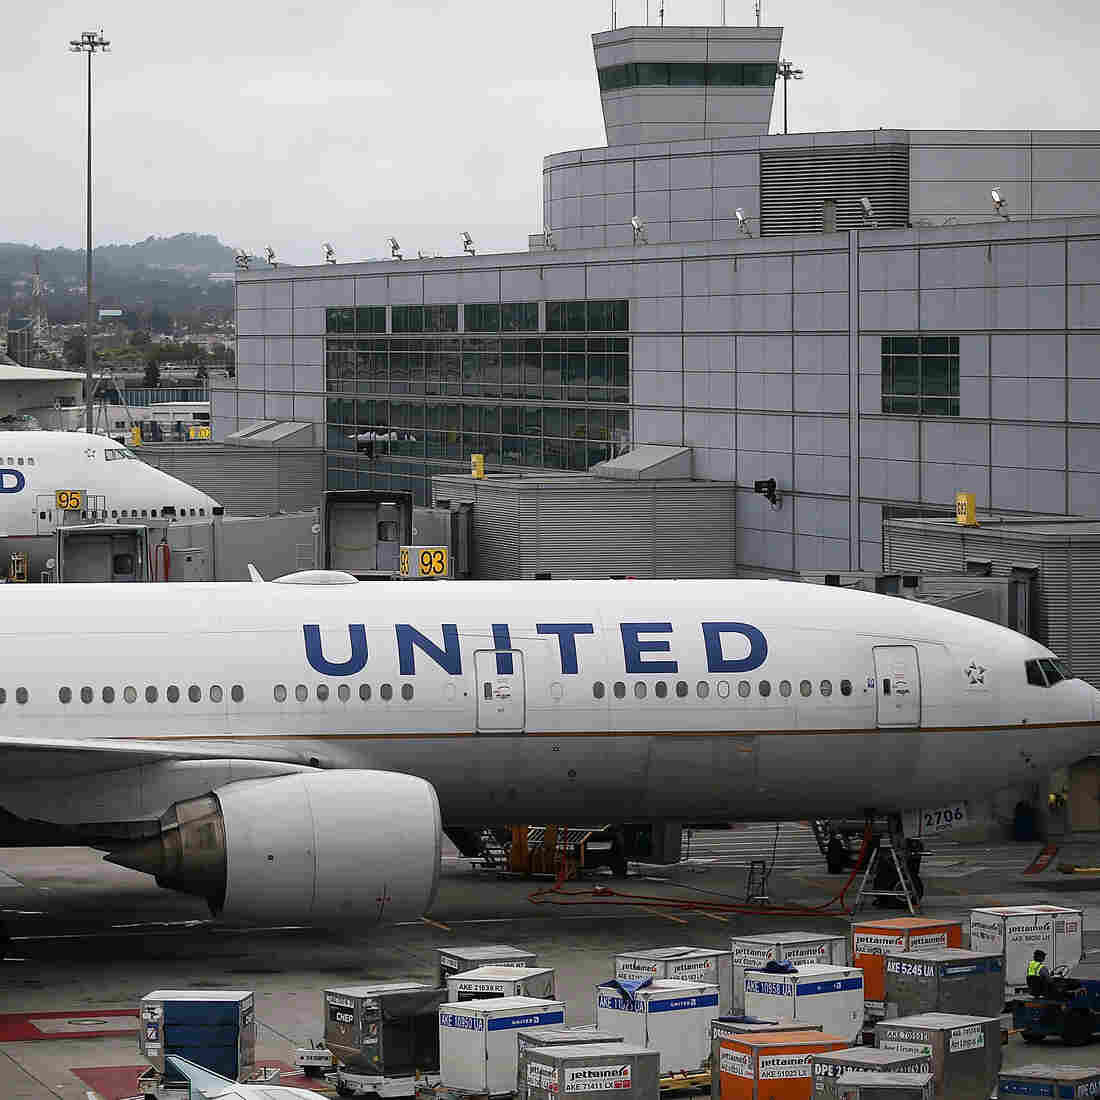 United Airlines Faces Steep Ascent In Not-So-Friendly Skies